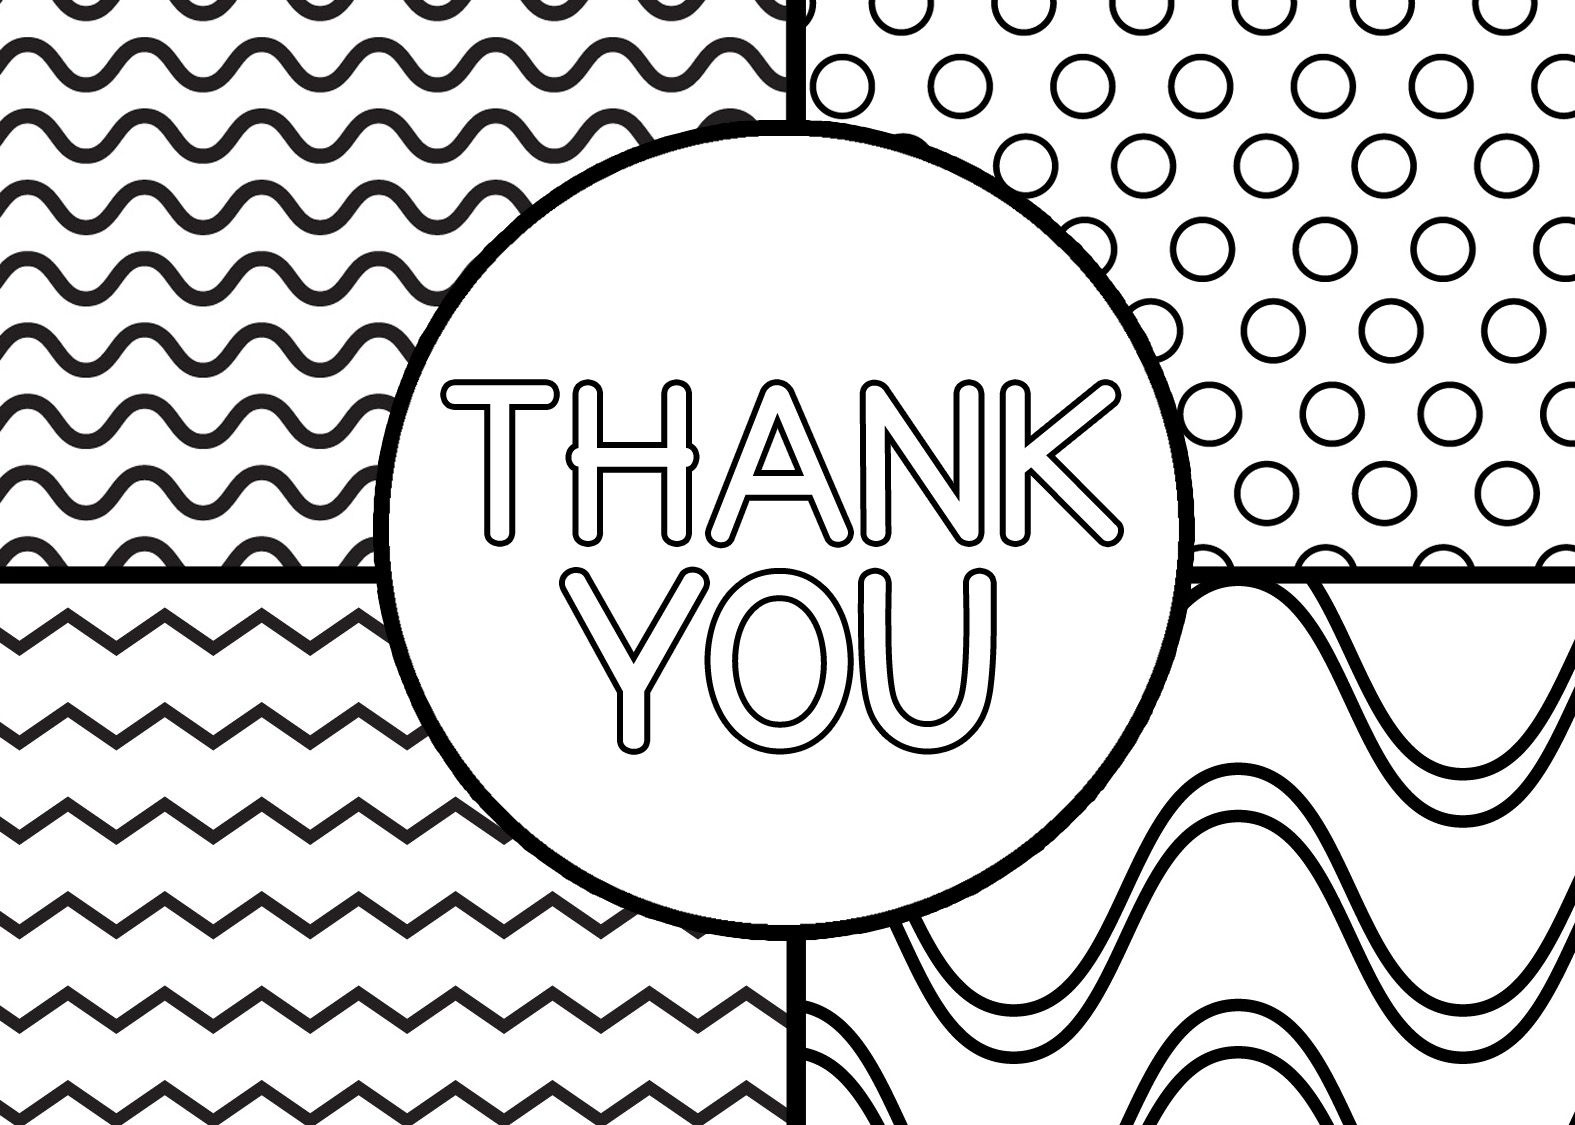 Printable Thank You Cards For Kids   Classroom Thank You Cards - Free Printable Thank You Cards Black And White